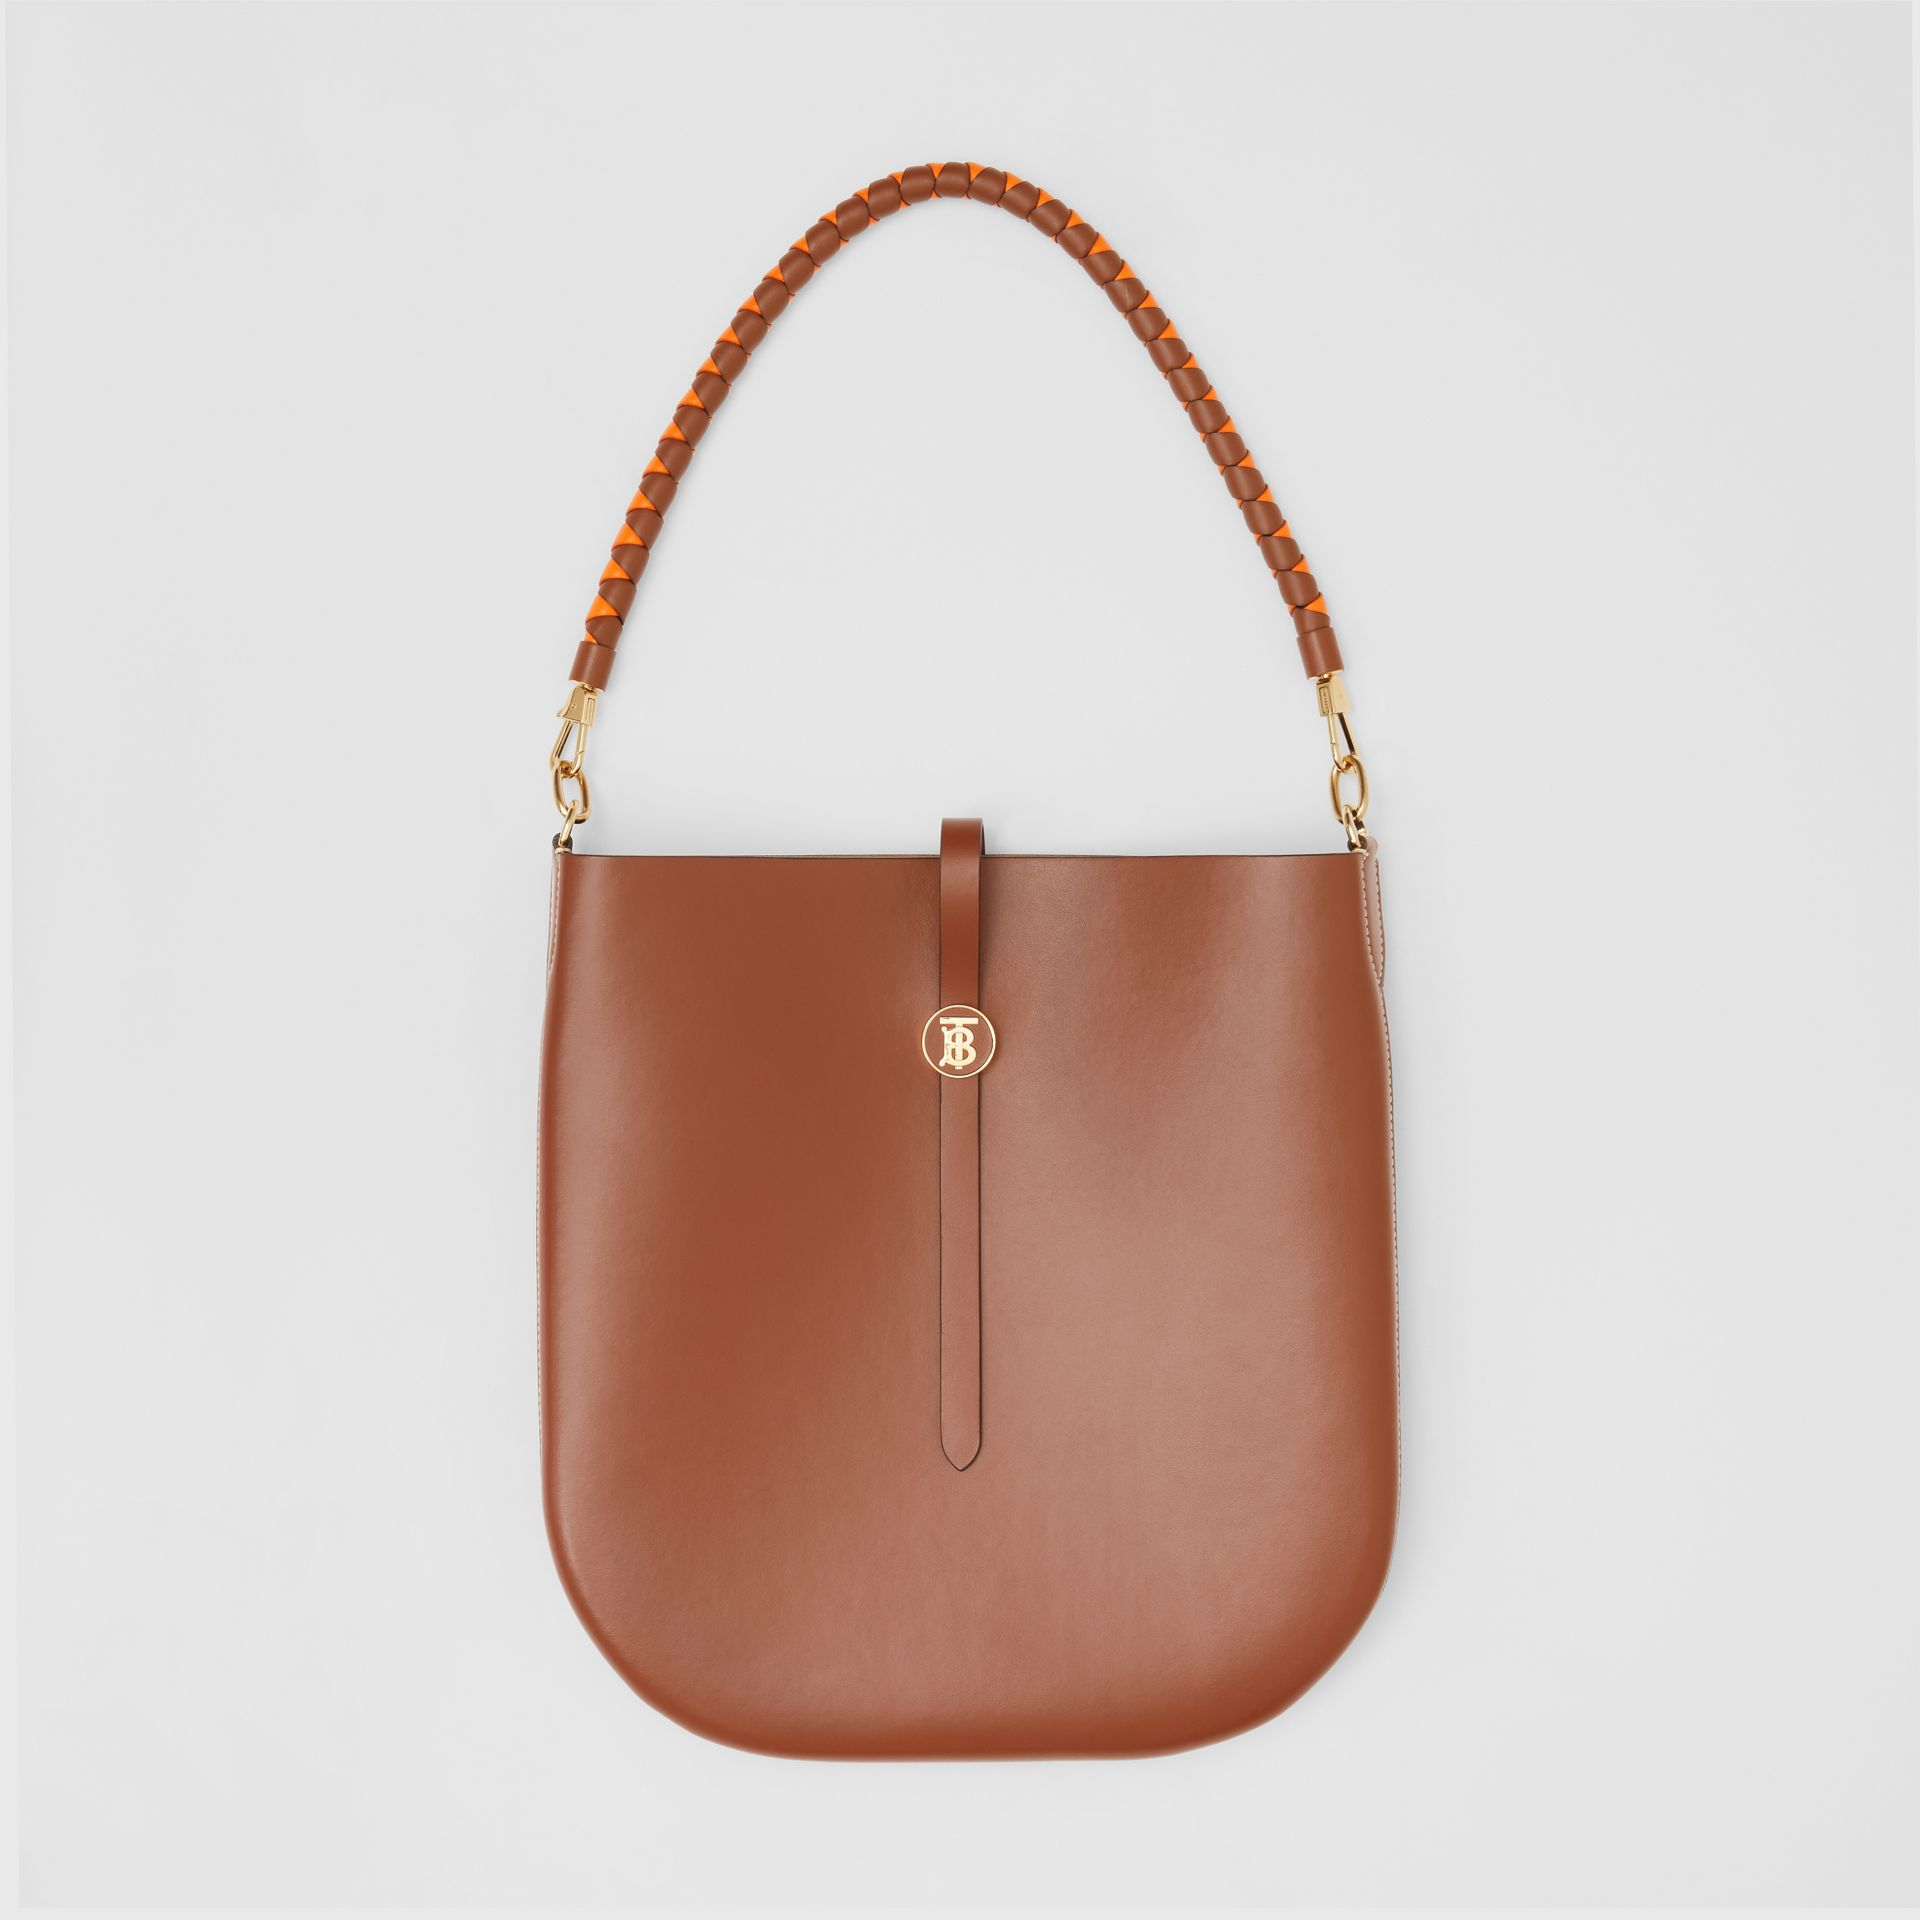 Leather Anne Bag in Tan - Women | Burberry United Kingdom - gallery image 3